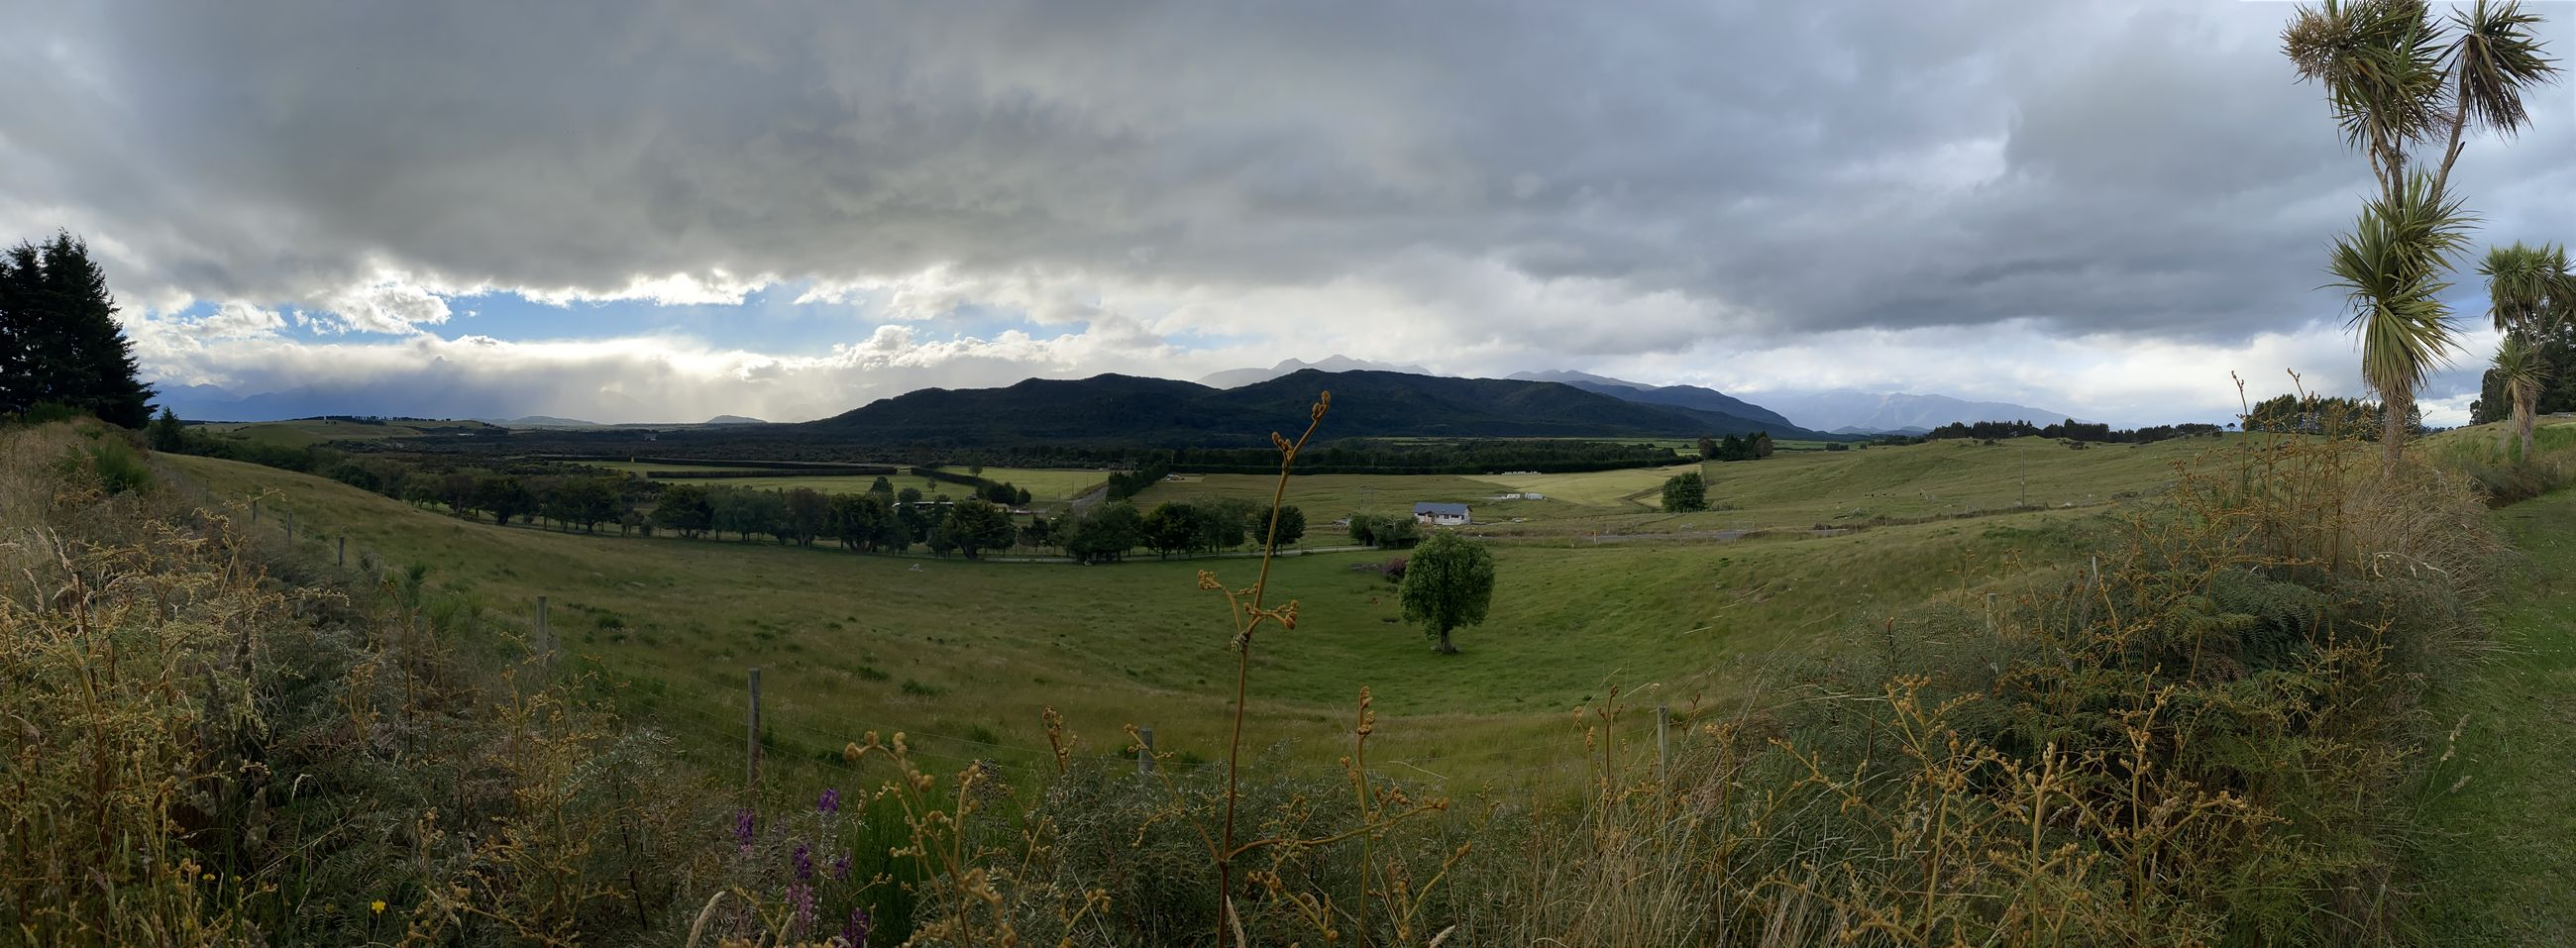 PANORAMIC VIEW OF LANDSCAPE